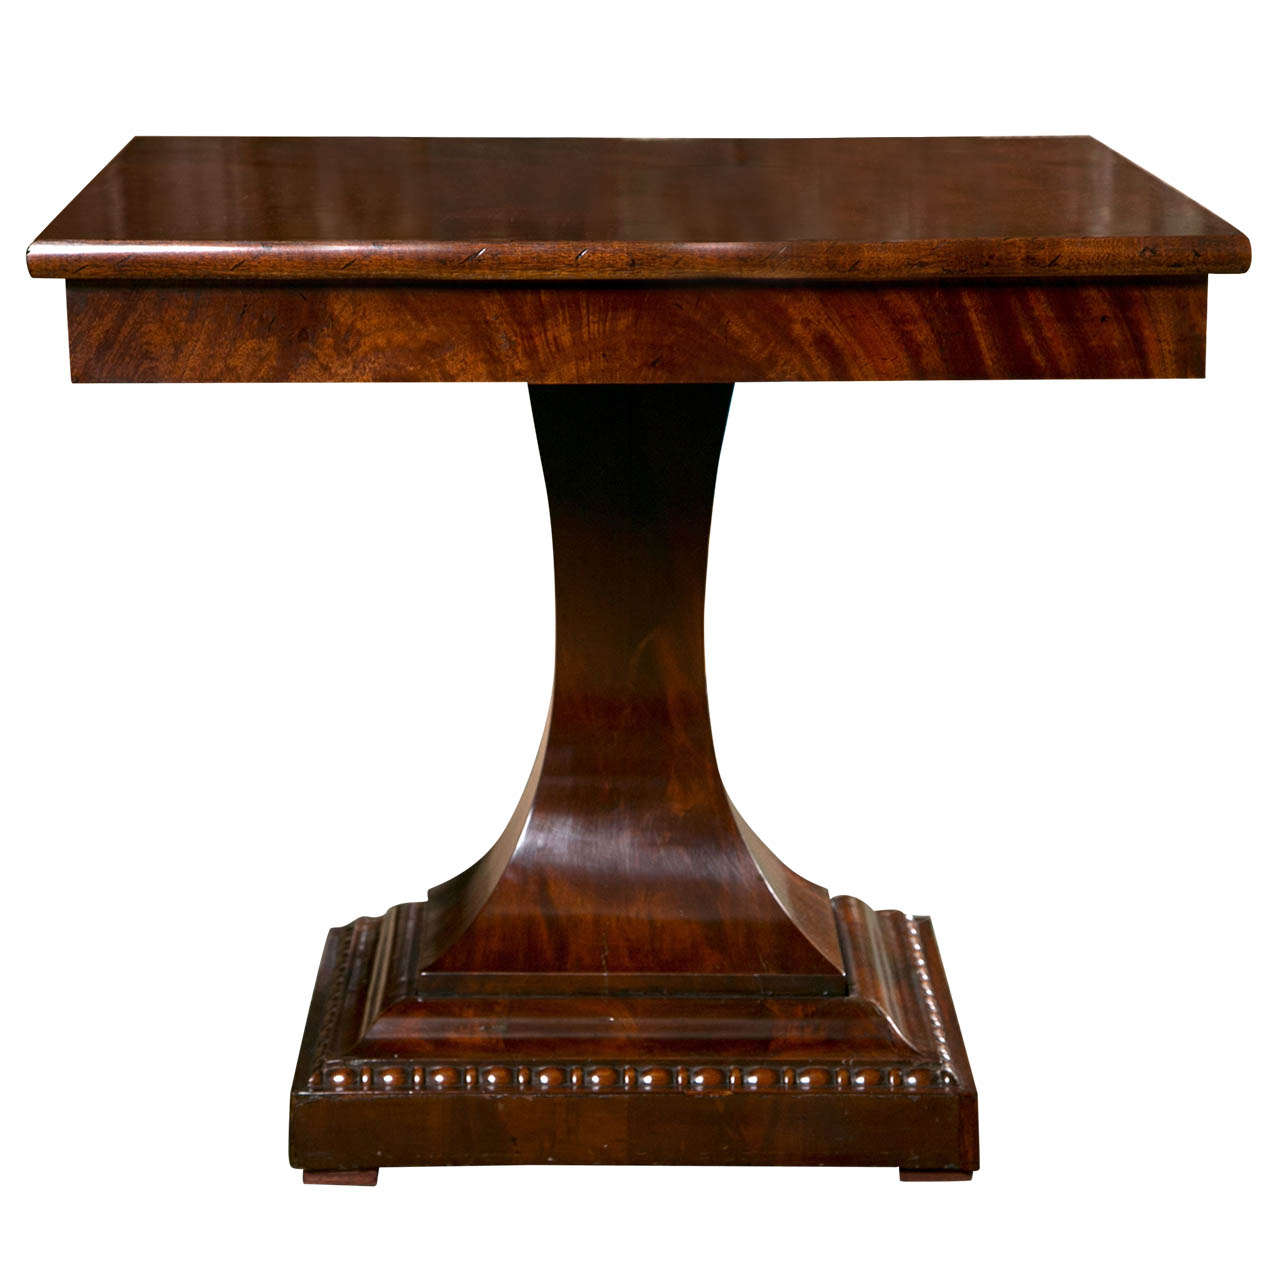 Mahogany centre table for sale at 1stdibs for Furniture centre table